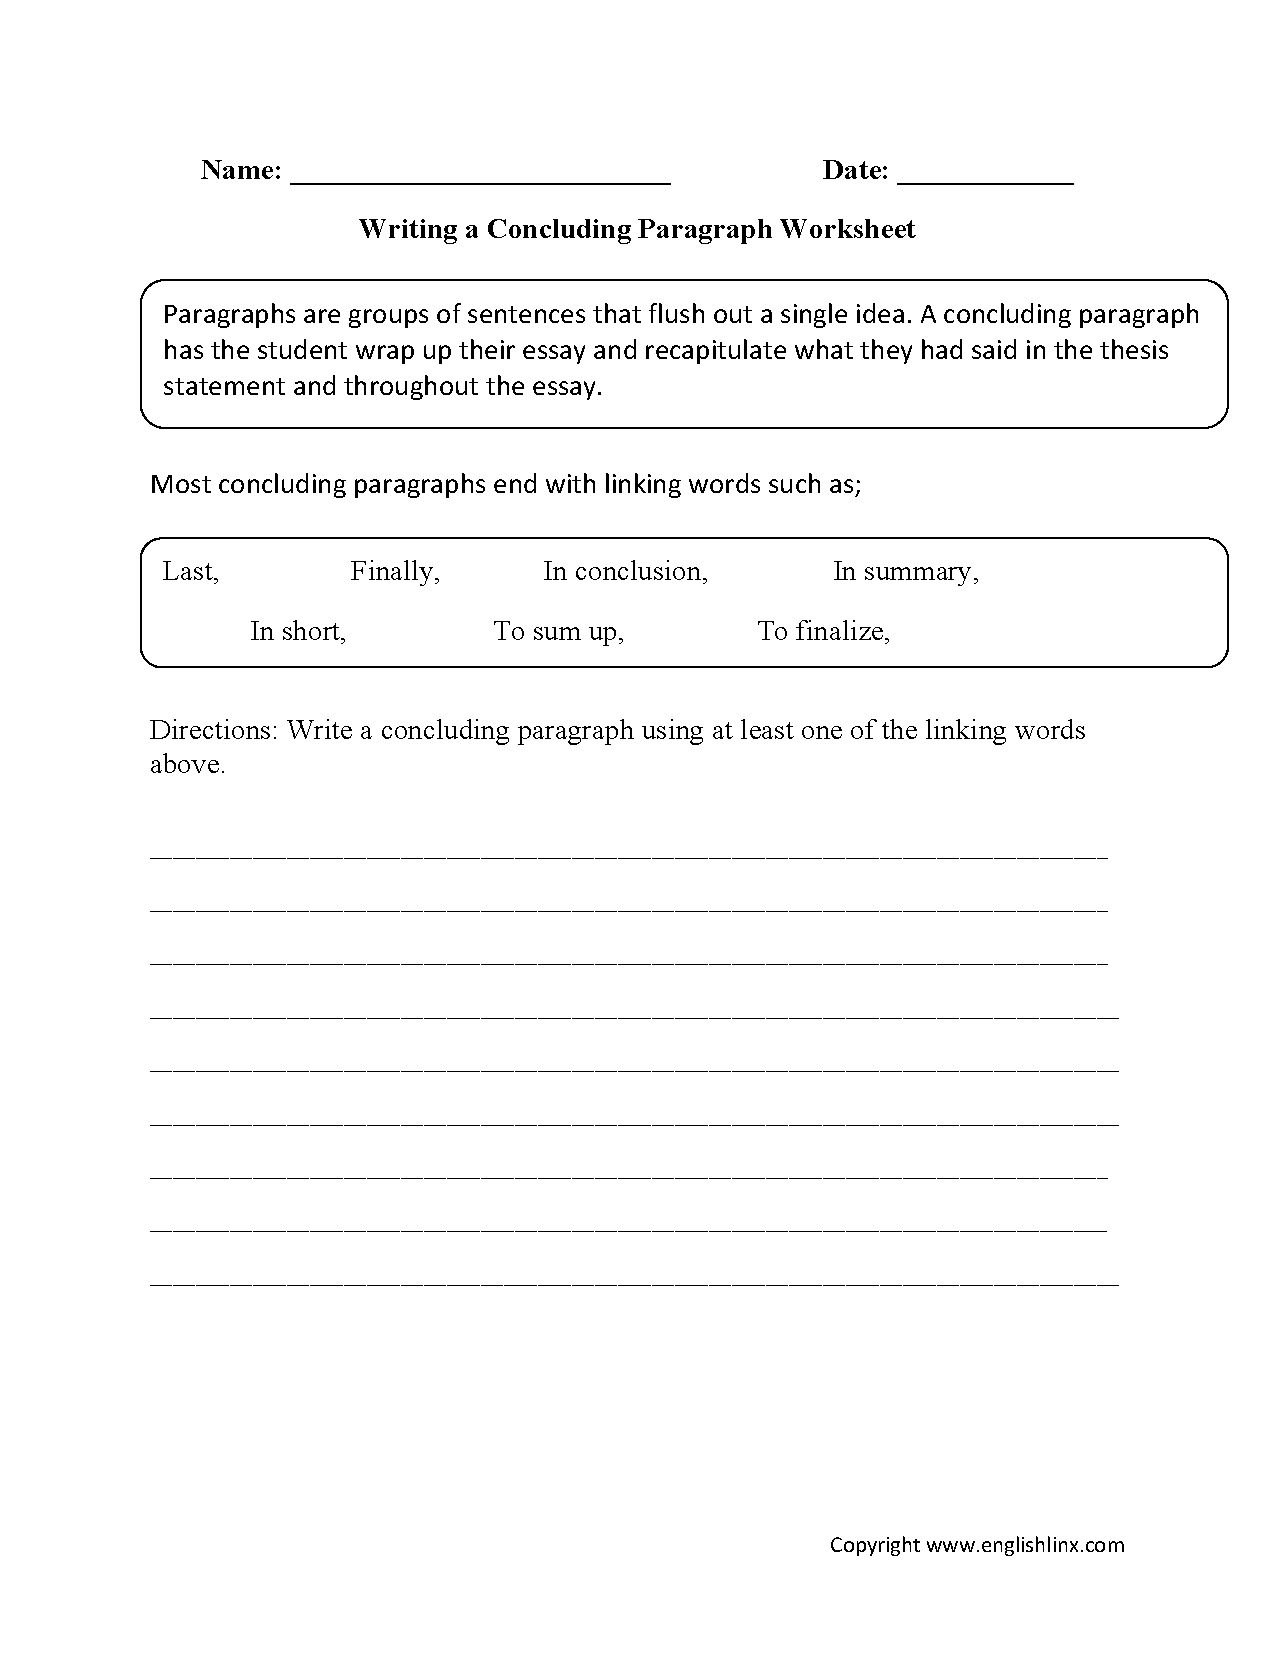 15 Best Images Of Narrative Paragraphs Worksheets